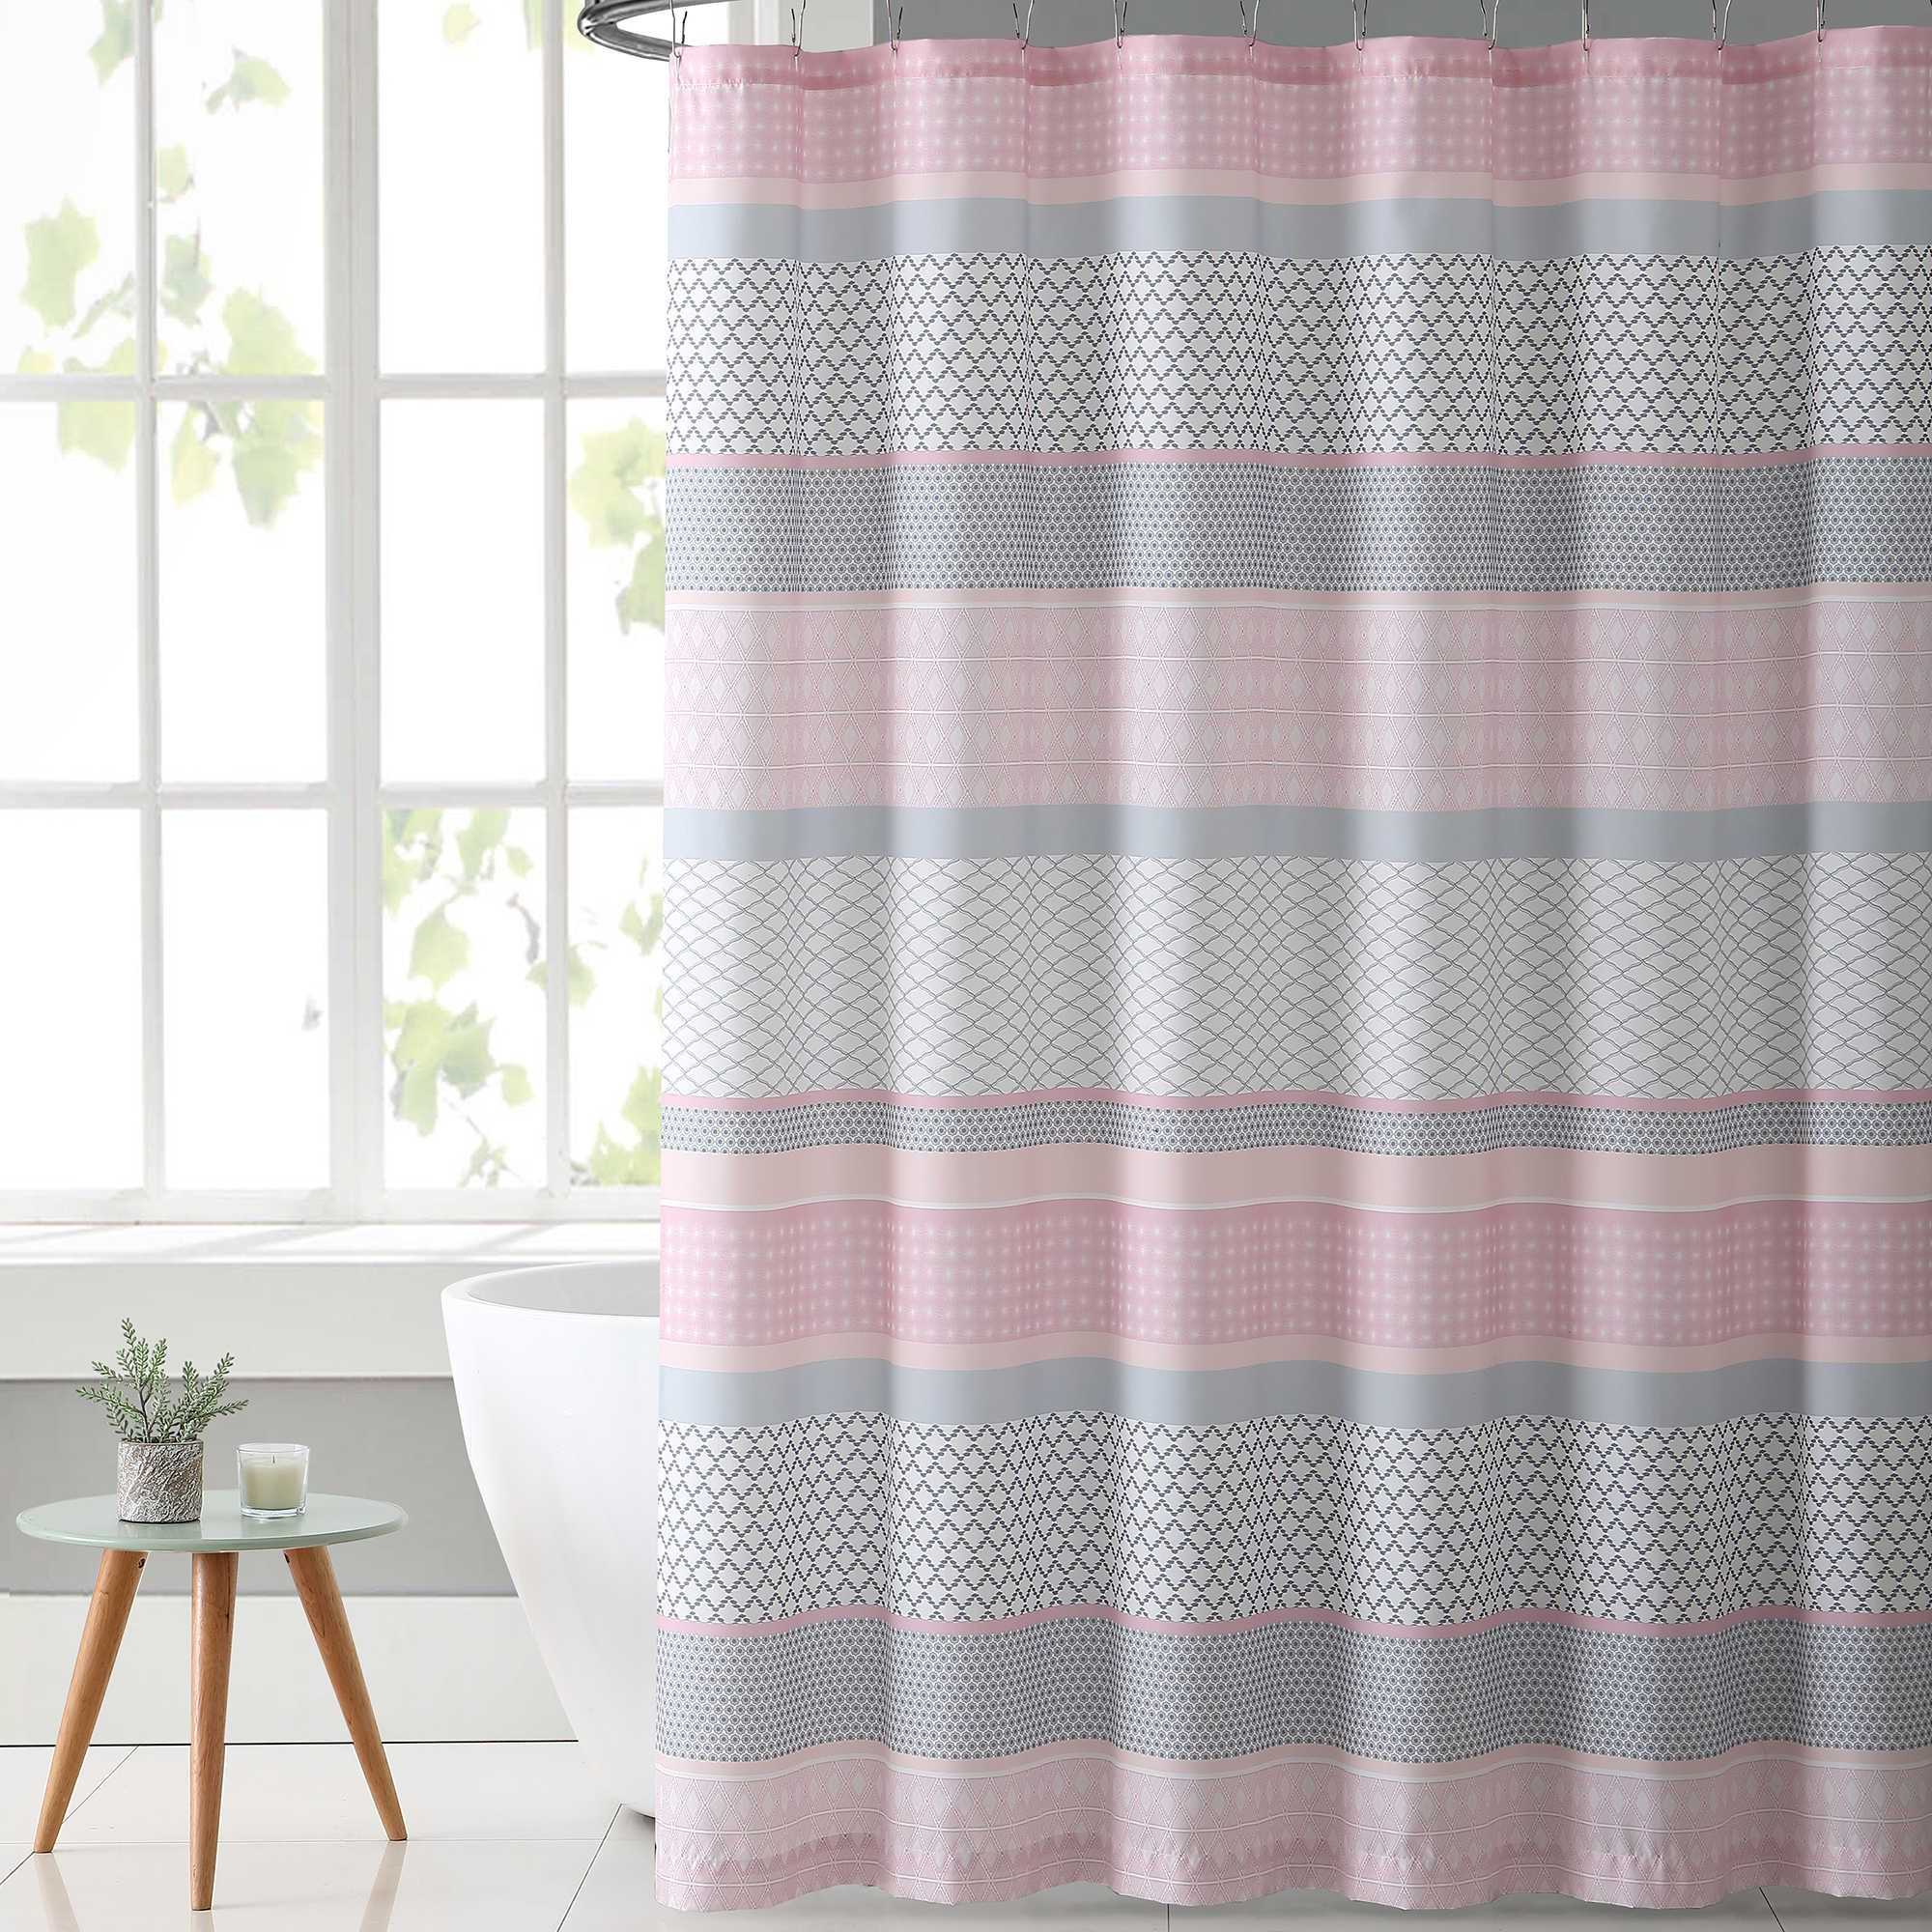 VCNY Home Stockholm Shower Curtain in Pink Grey DECOR